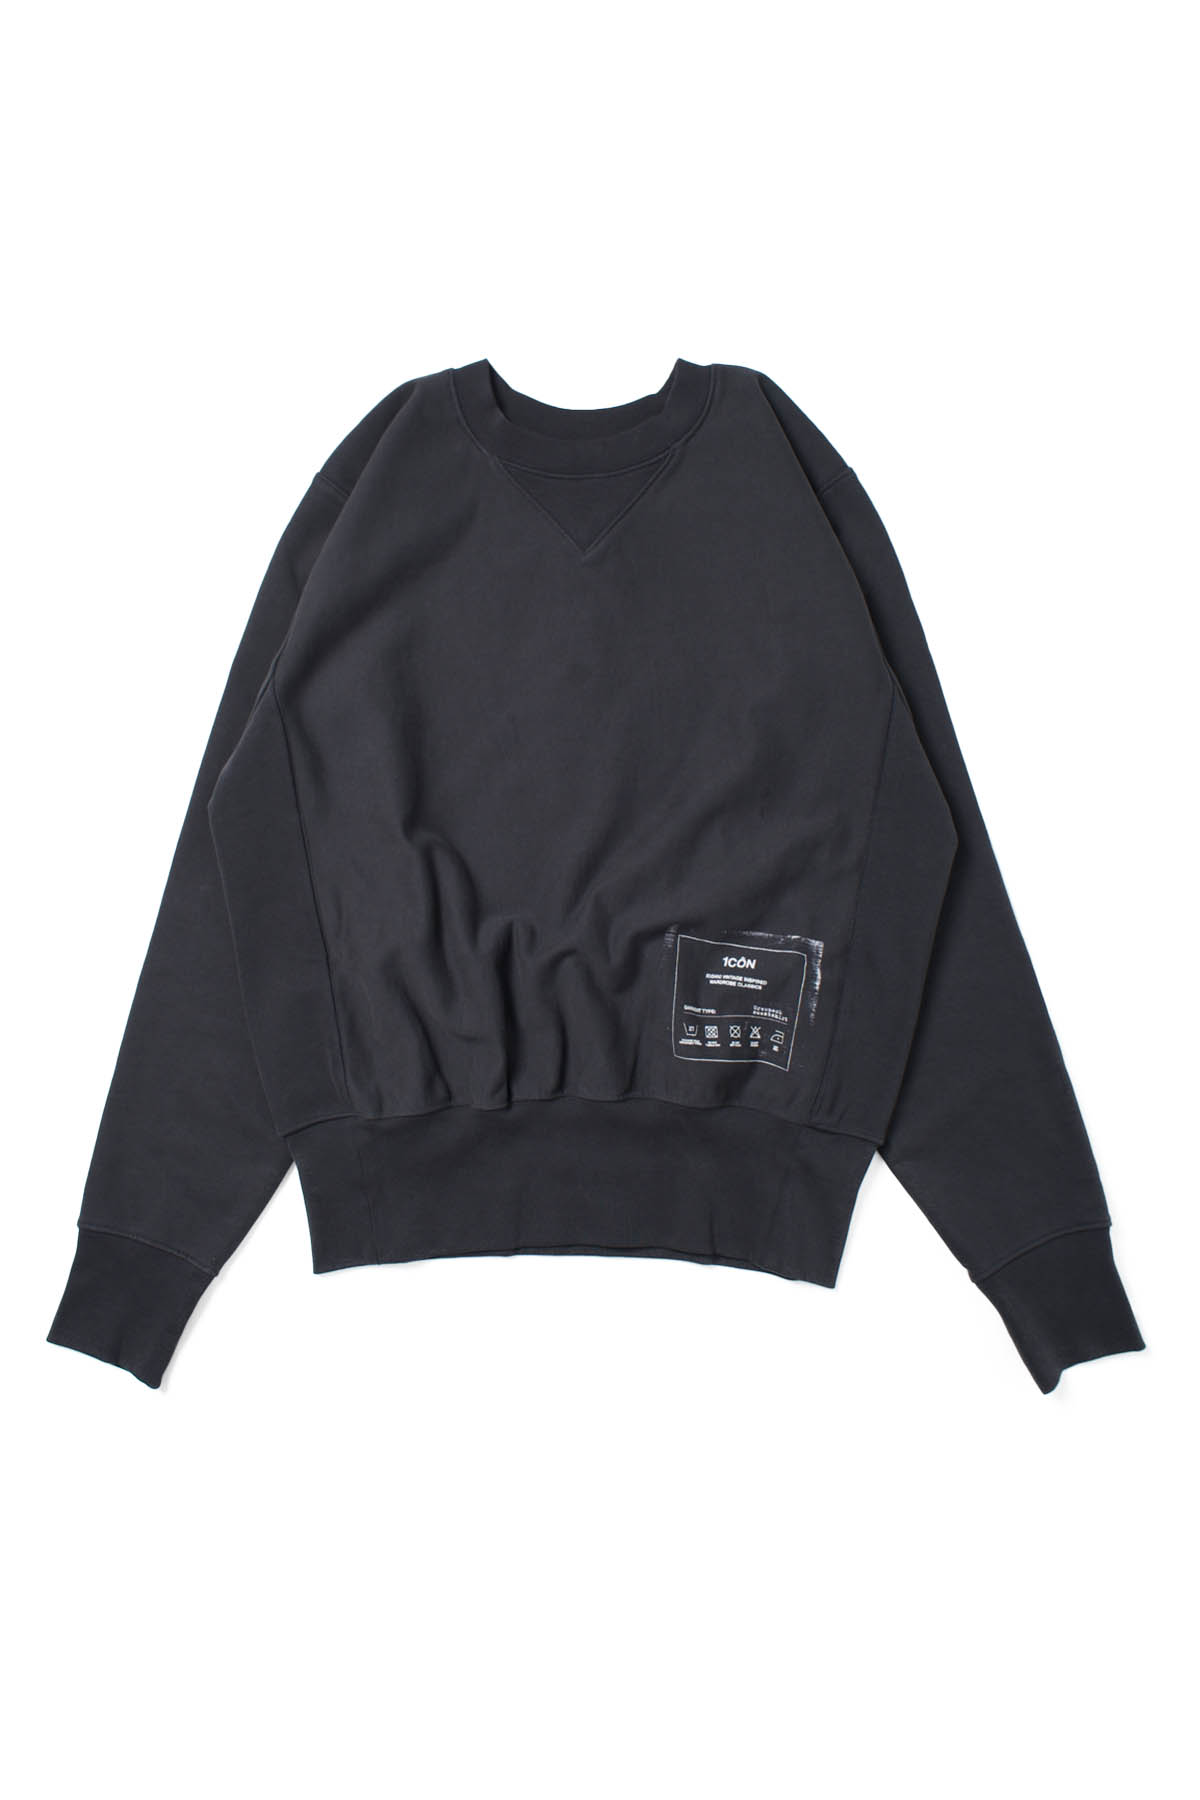 Product Dyed Sweat [2021SS]